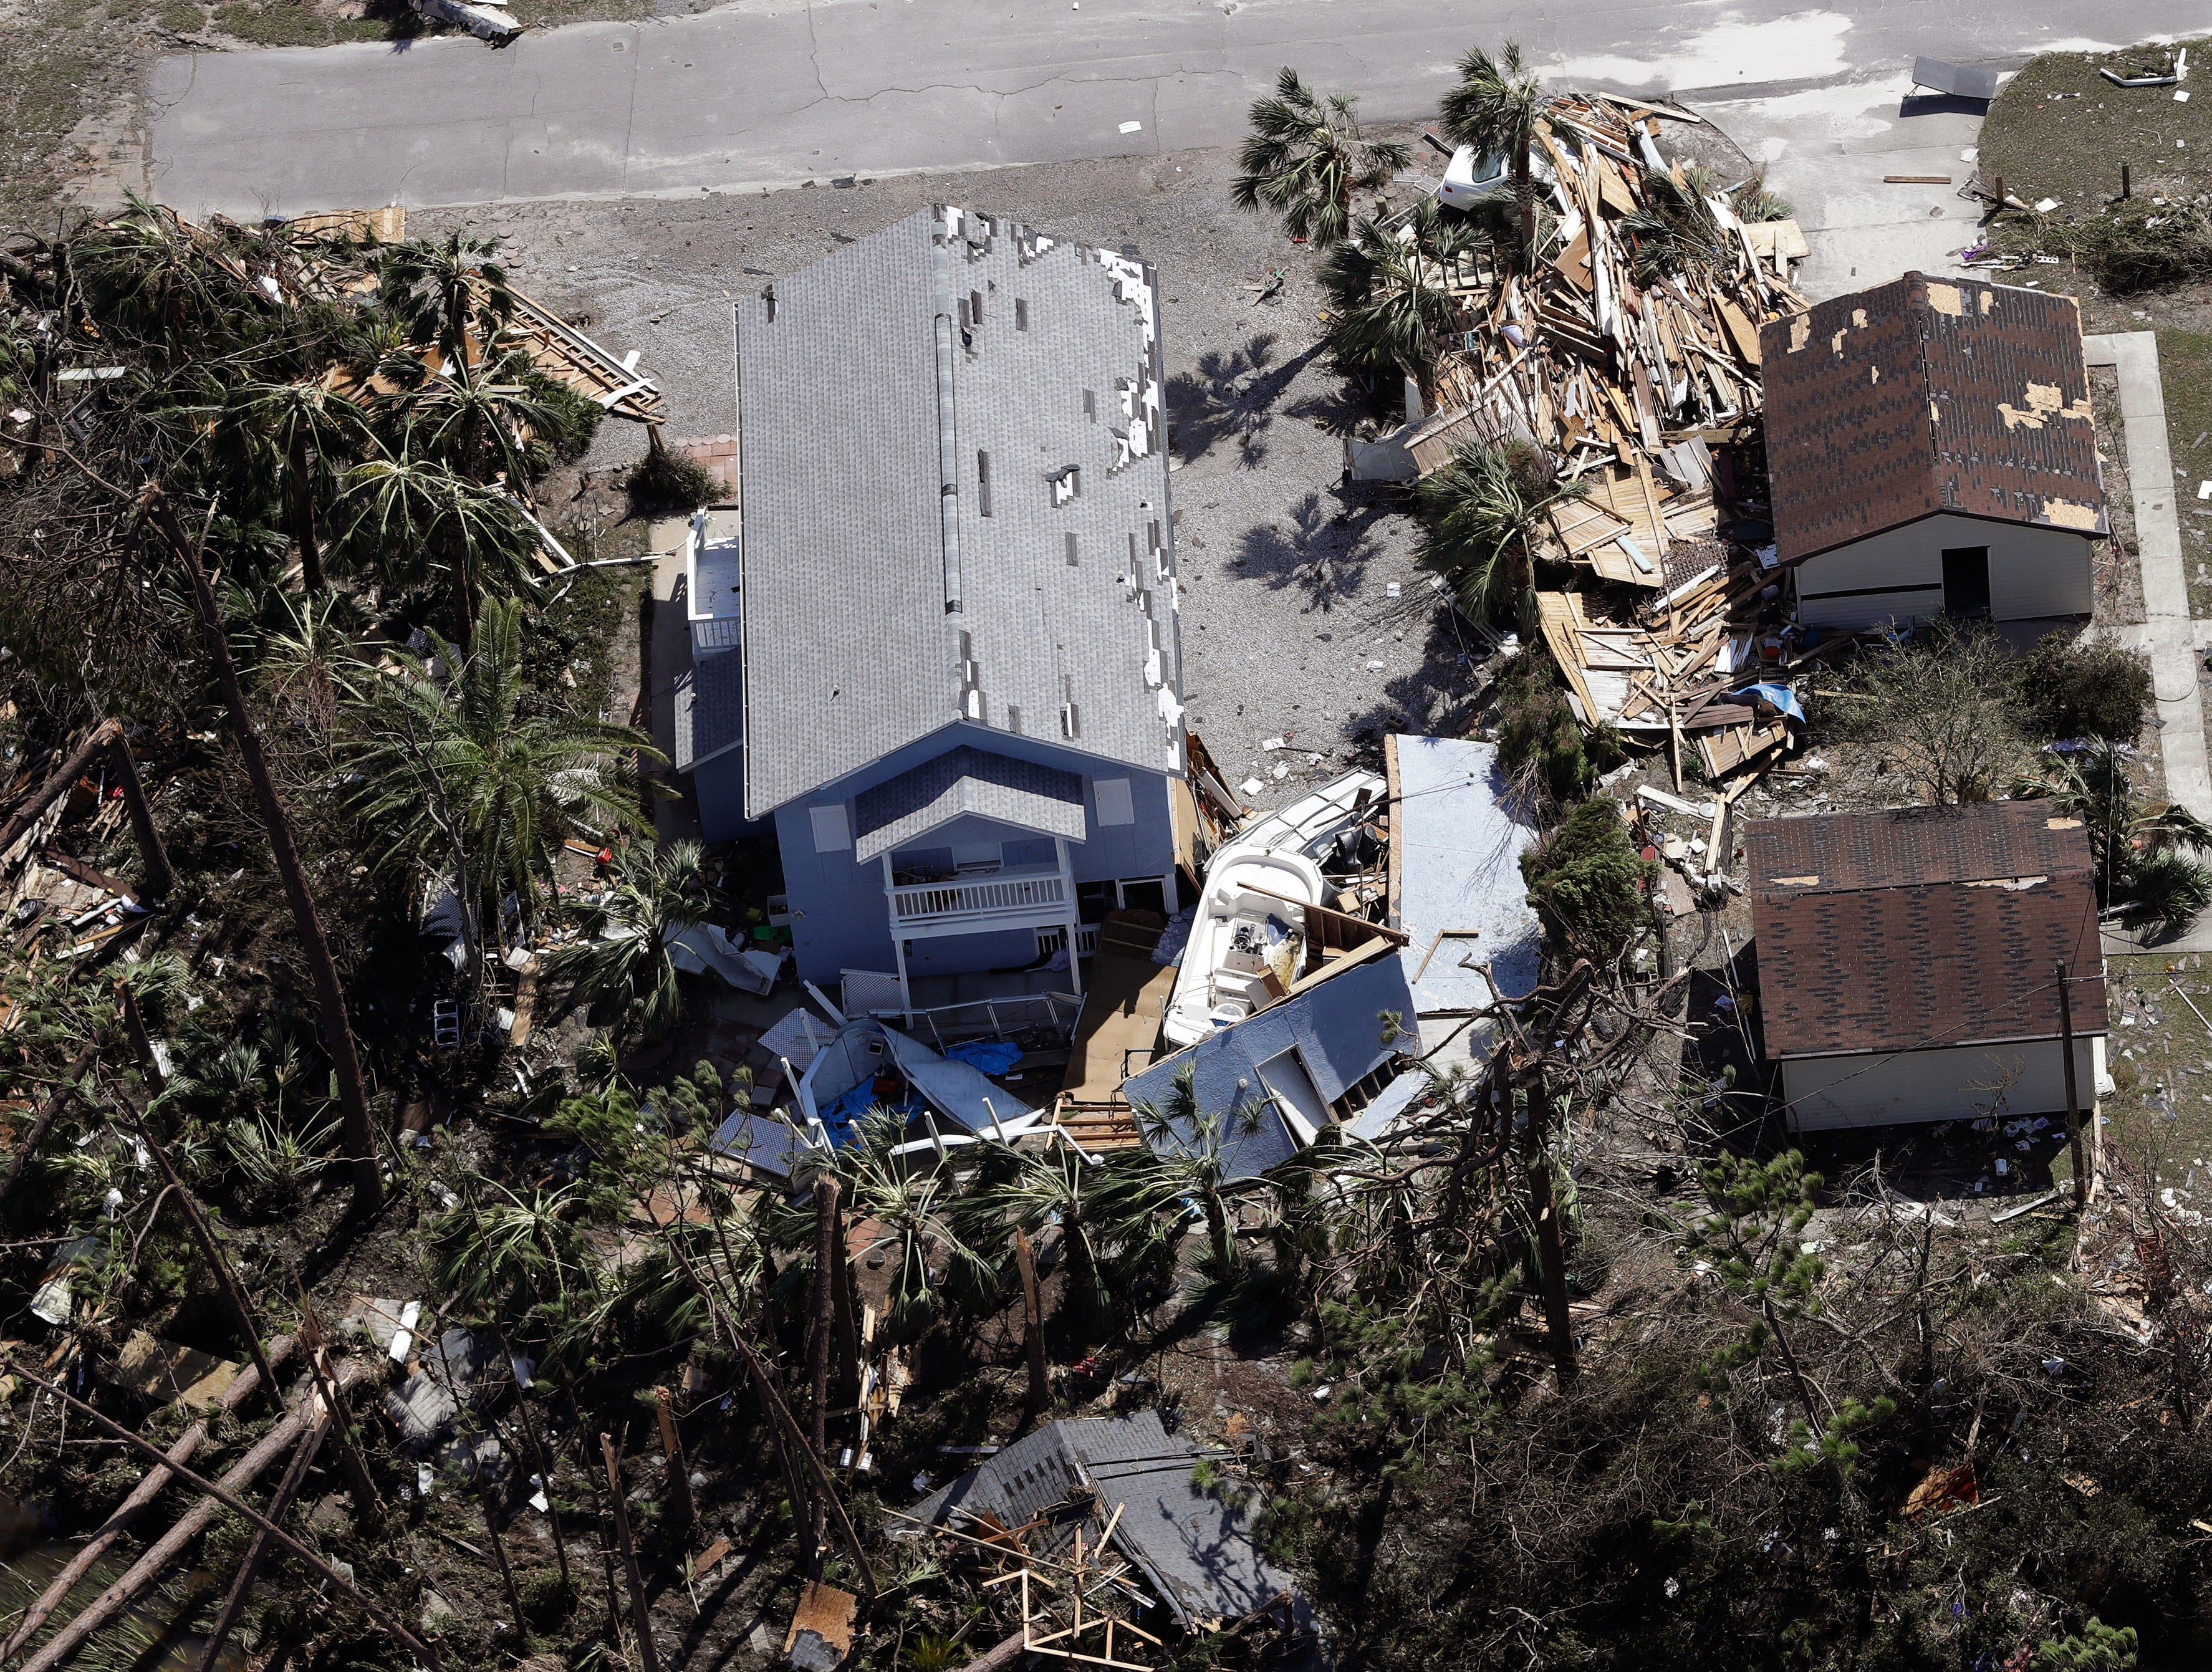 A home is destroyed from Hurricane Michael Thursday, Oct. 11, 2018, in Mexico Beach, Fla. Hurricane Michael made landfall Wednesday as a Category 4 hurricane with 155 mph (250 kph) winds and a storm surge of 9 feet (2.7 meters). (AP Photo/Chris O'Meara)